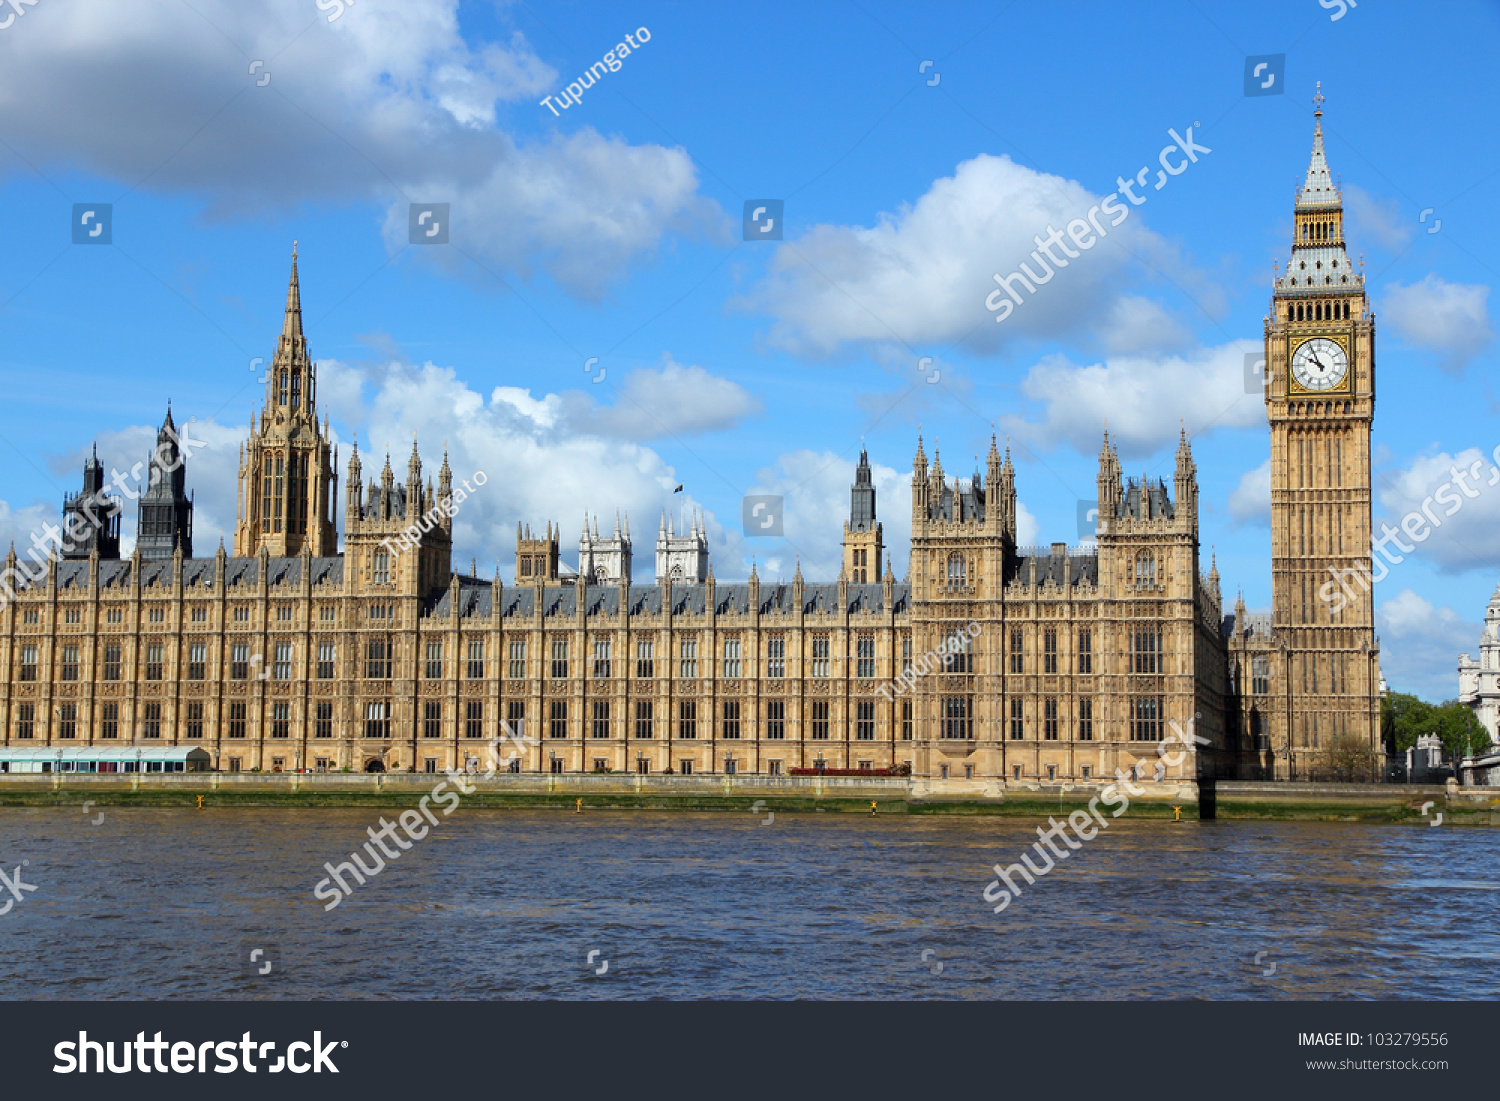 London united kingdom palace westminster houses stock for Parliament site